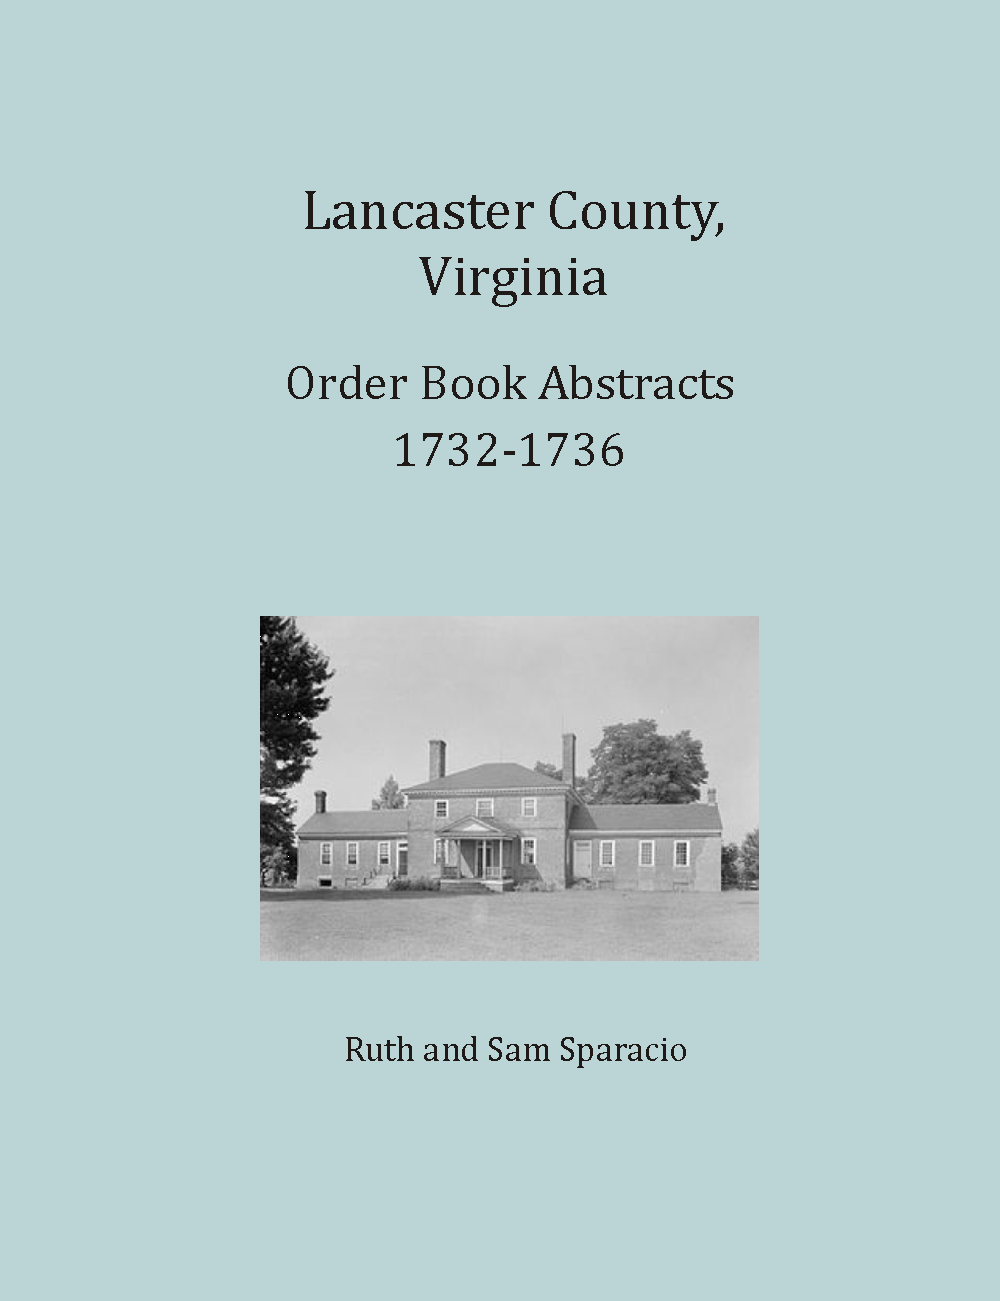 Lancaster County, Virginia Order Book, 1732-1736